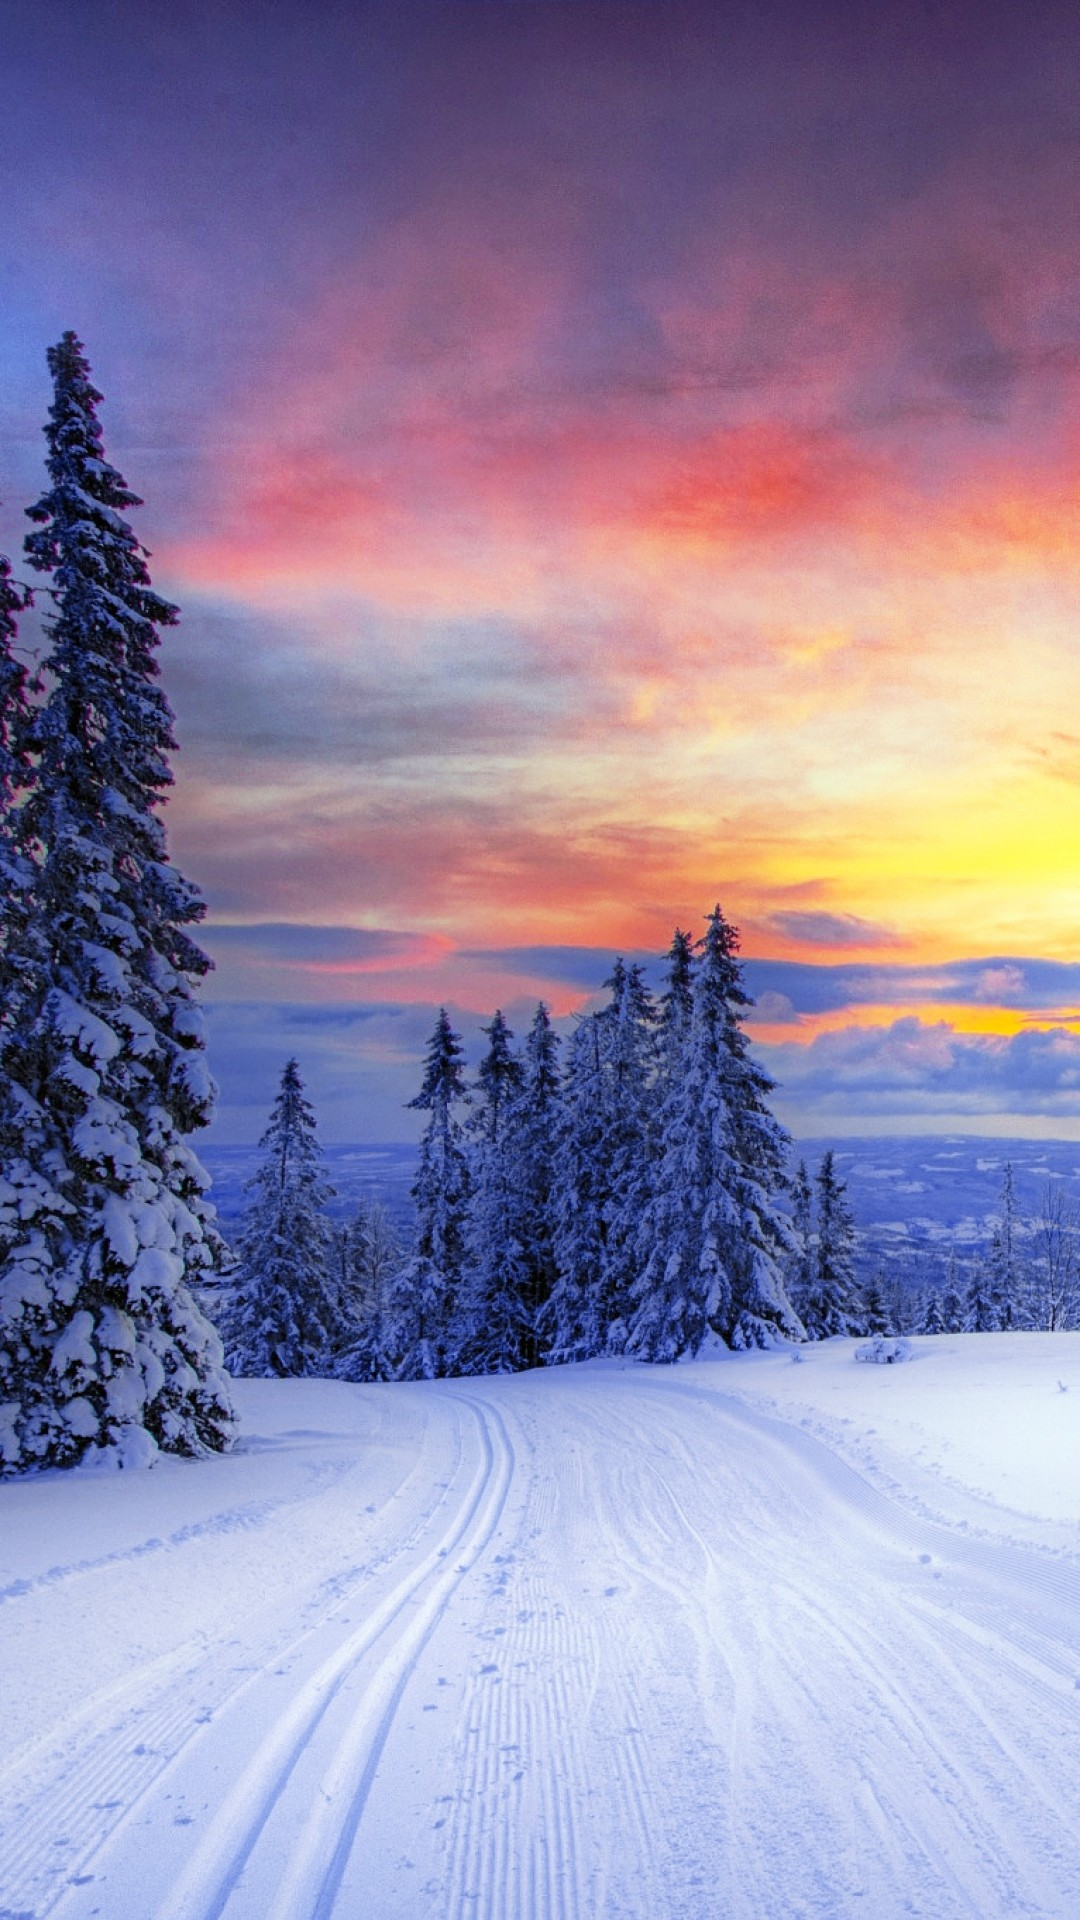 winter wallpaper iphone 6 plus 82 images